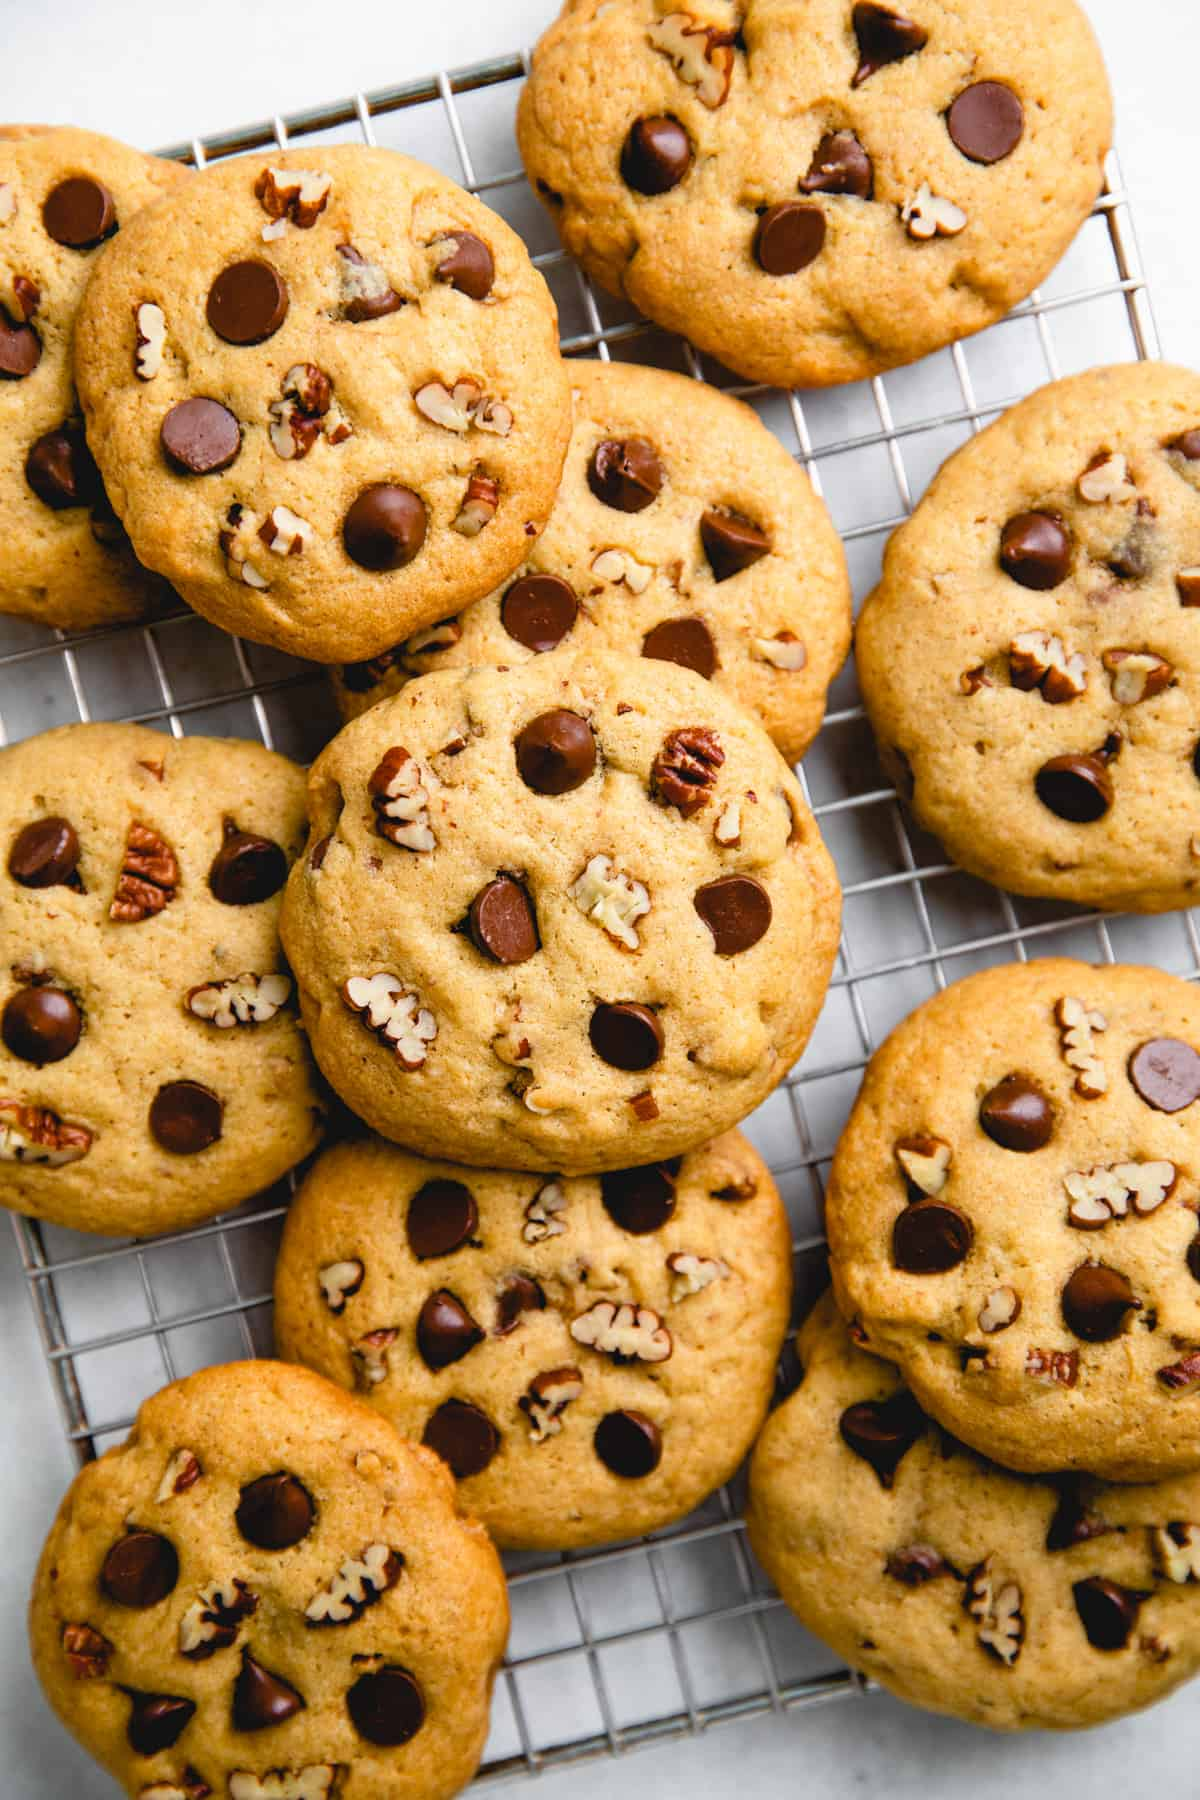 Pecan Chocolate Chip Cookies on a wire rack.